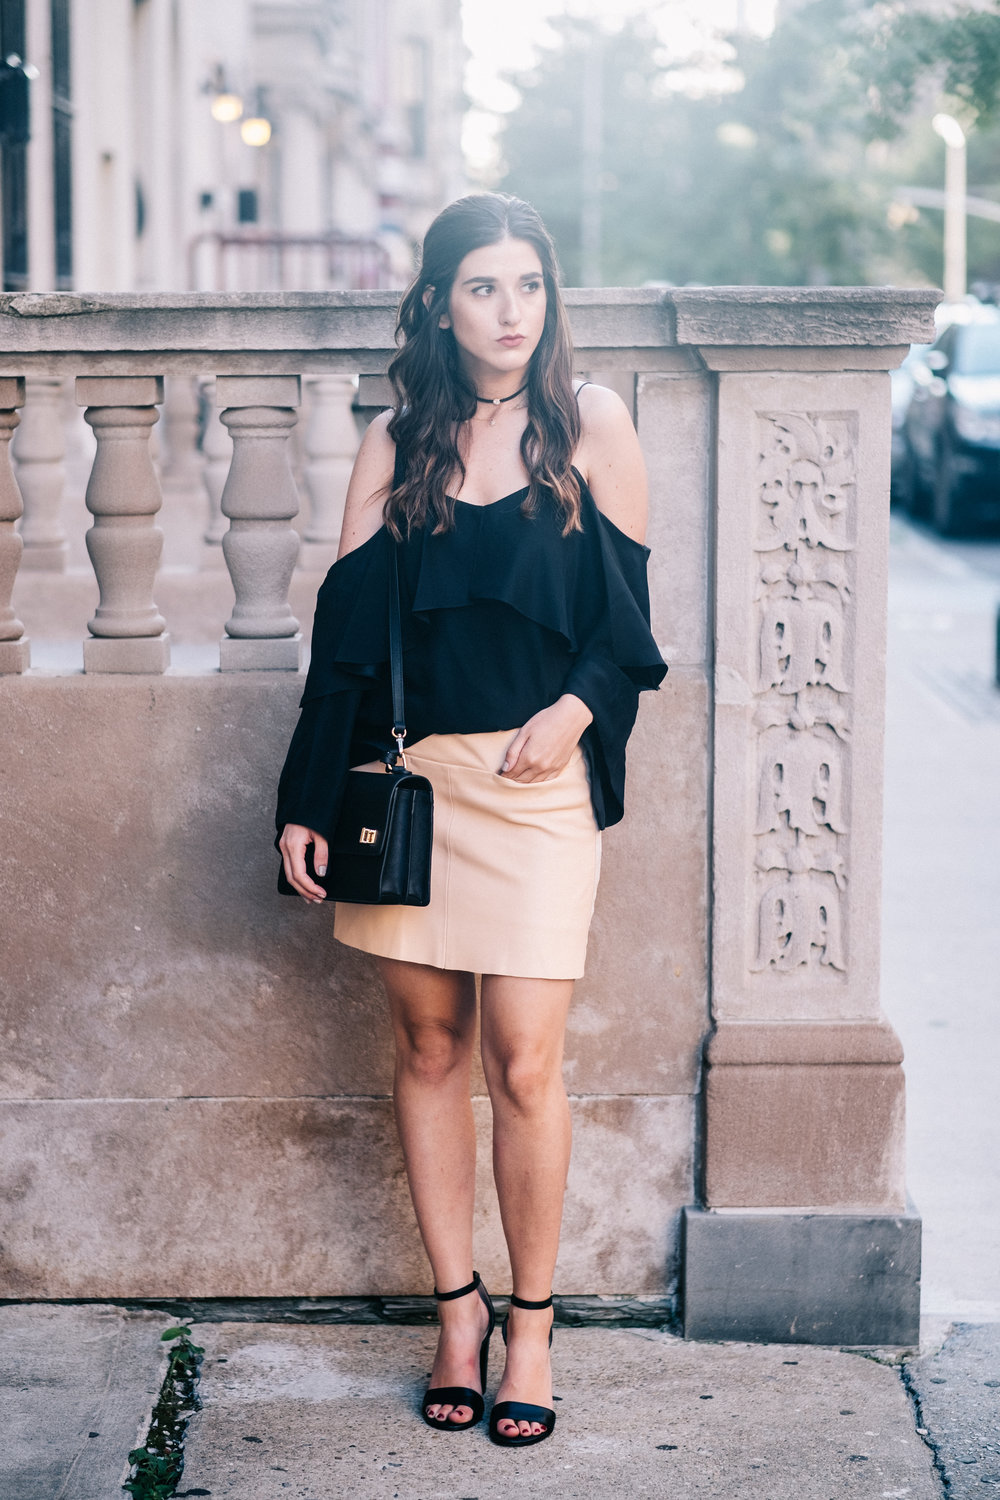 The+Perfect+Everyday+Bag+Henri+Bendel+Louboutins+&+Love+Fashion+Blog+Esther+Santer+NYC+Street+Style+Blogger+Outfit+OOTD+Trendy+Jay+Godfrey+Black+Cold+Shoulder+Top+Pink+Pleather+Skirt+Zara+Ivanka+Trump+Klover+Inspo+Sandals+Heels+Women+Purse+Girl+Hair.jpg